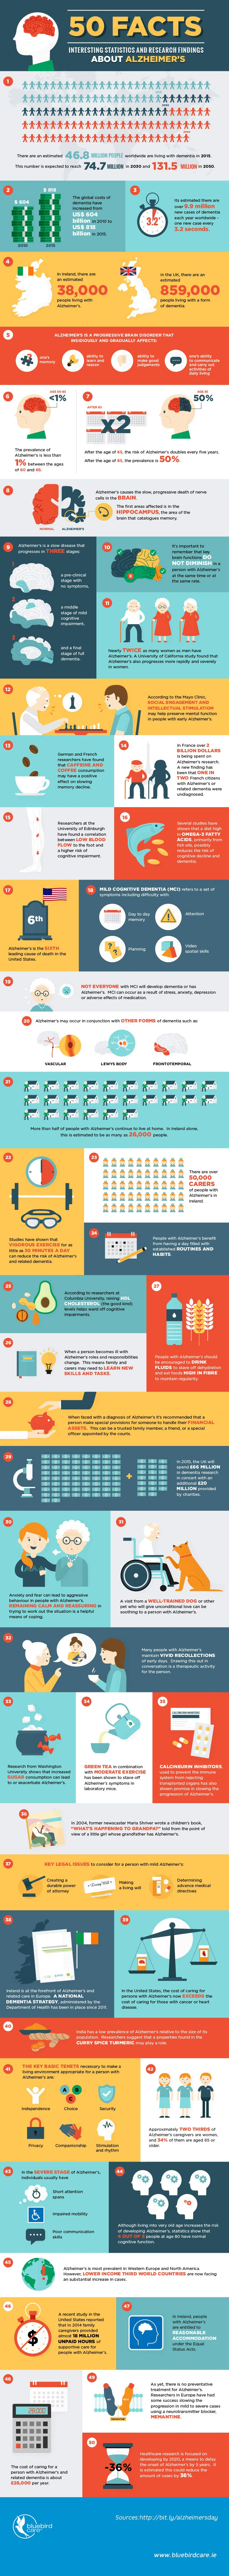 50 dementia facts infographic